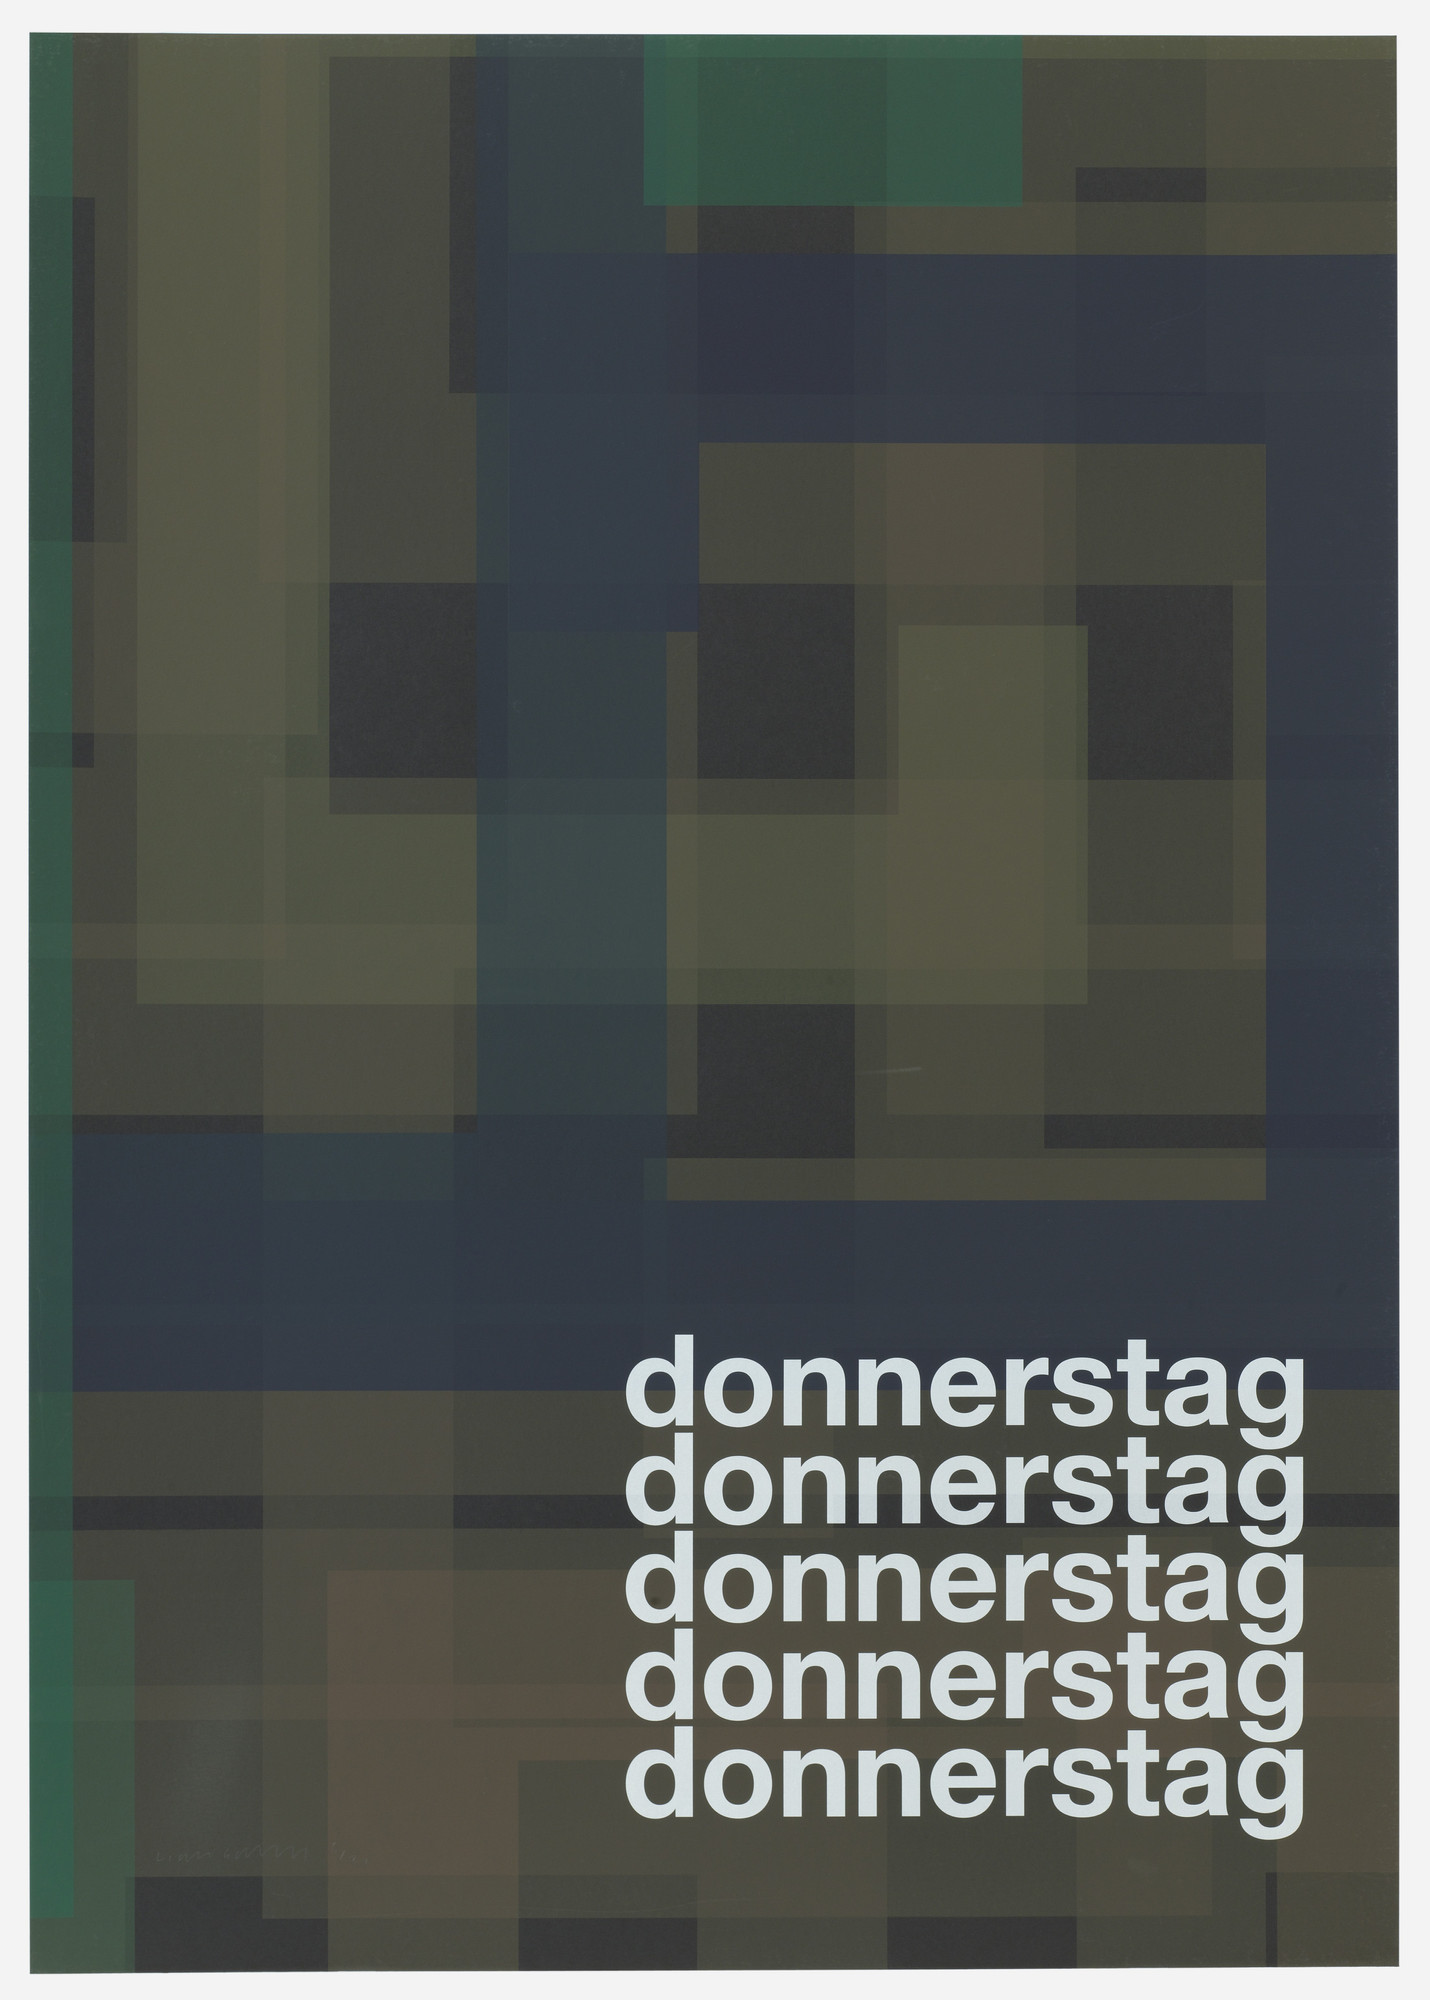 Liam Gillick. Donnerstag (Thursday) from Guide. 2004